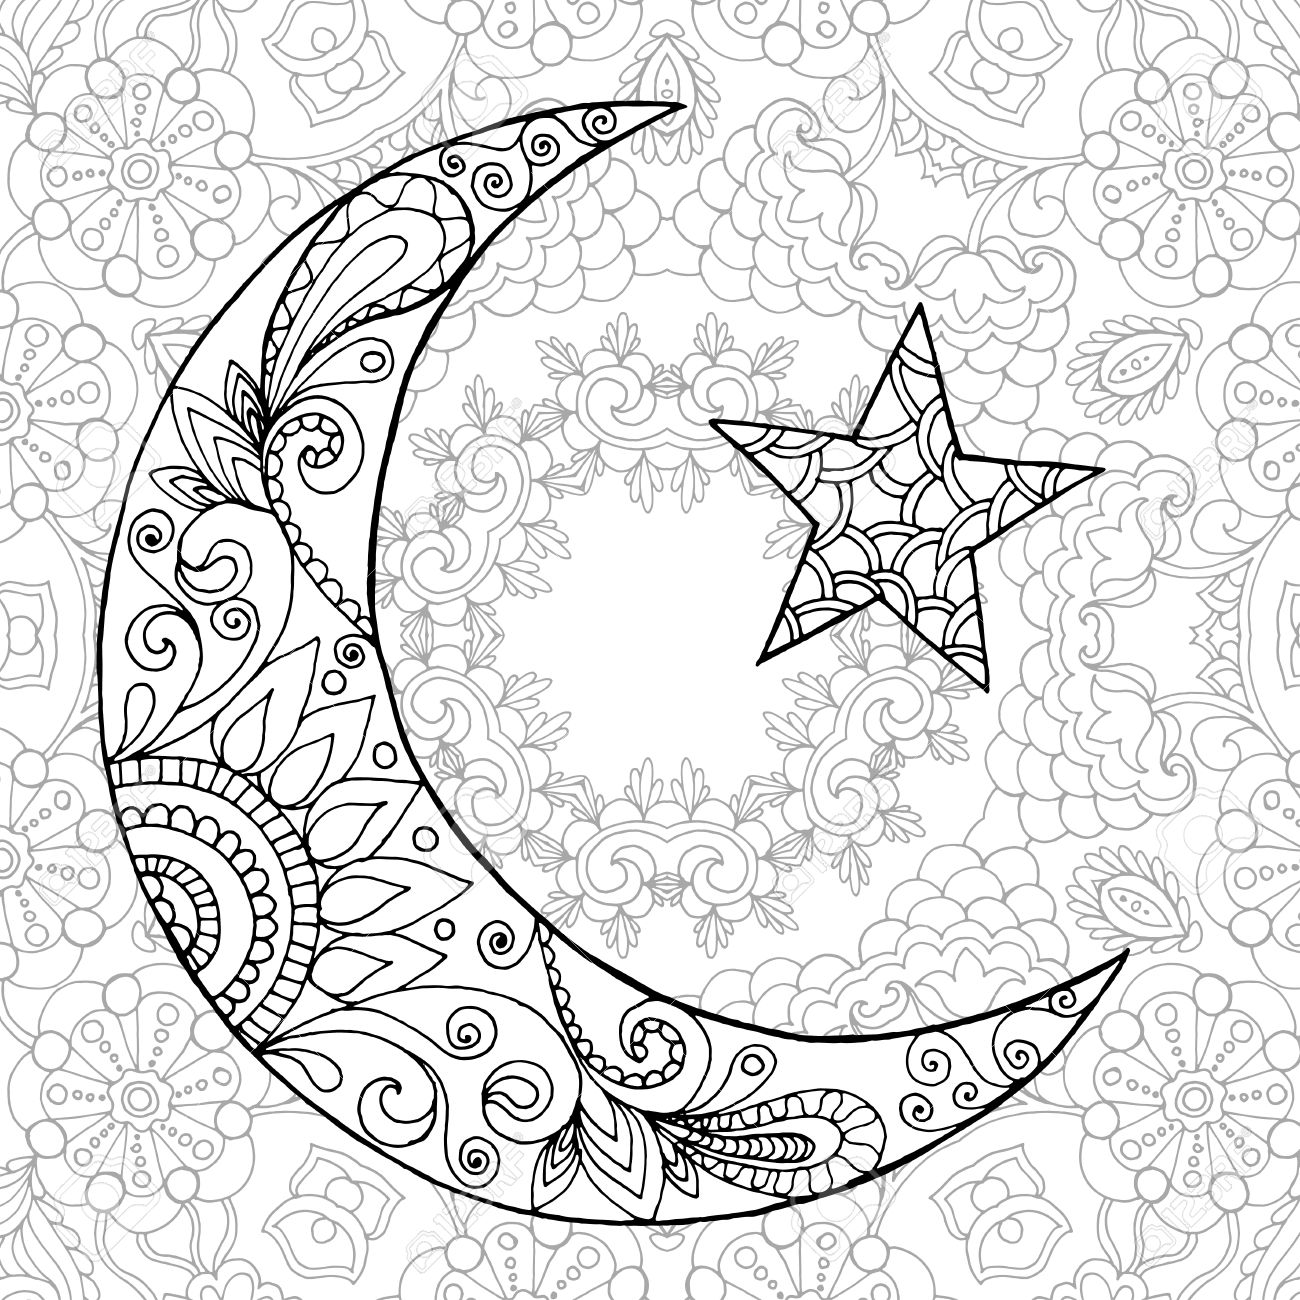 Ramadan Kareem Demi Lune Salutation Conception Coloriages Grave